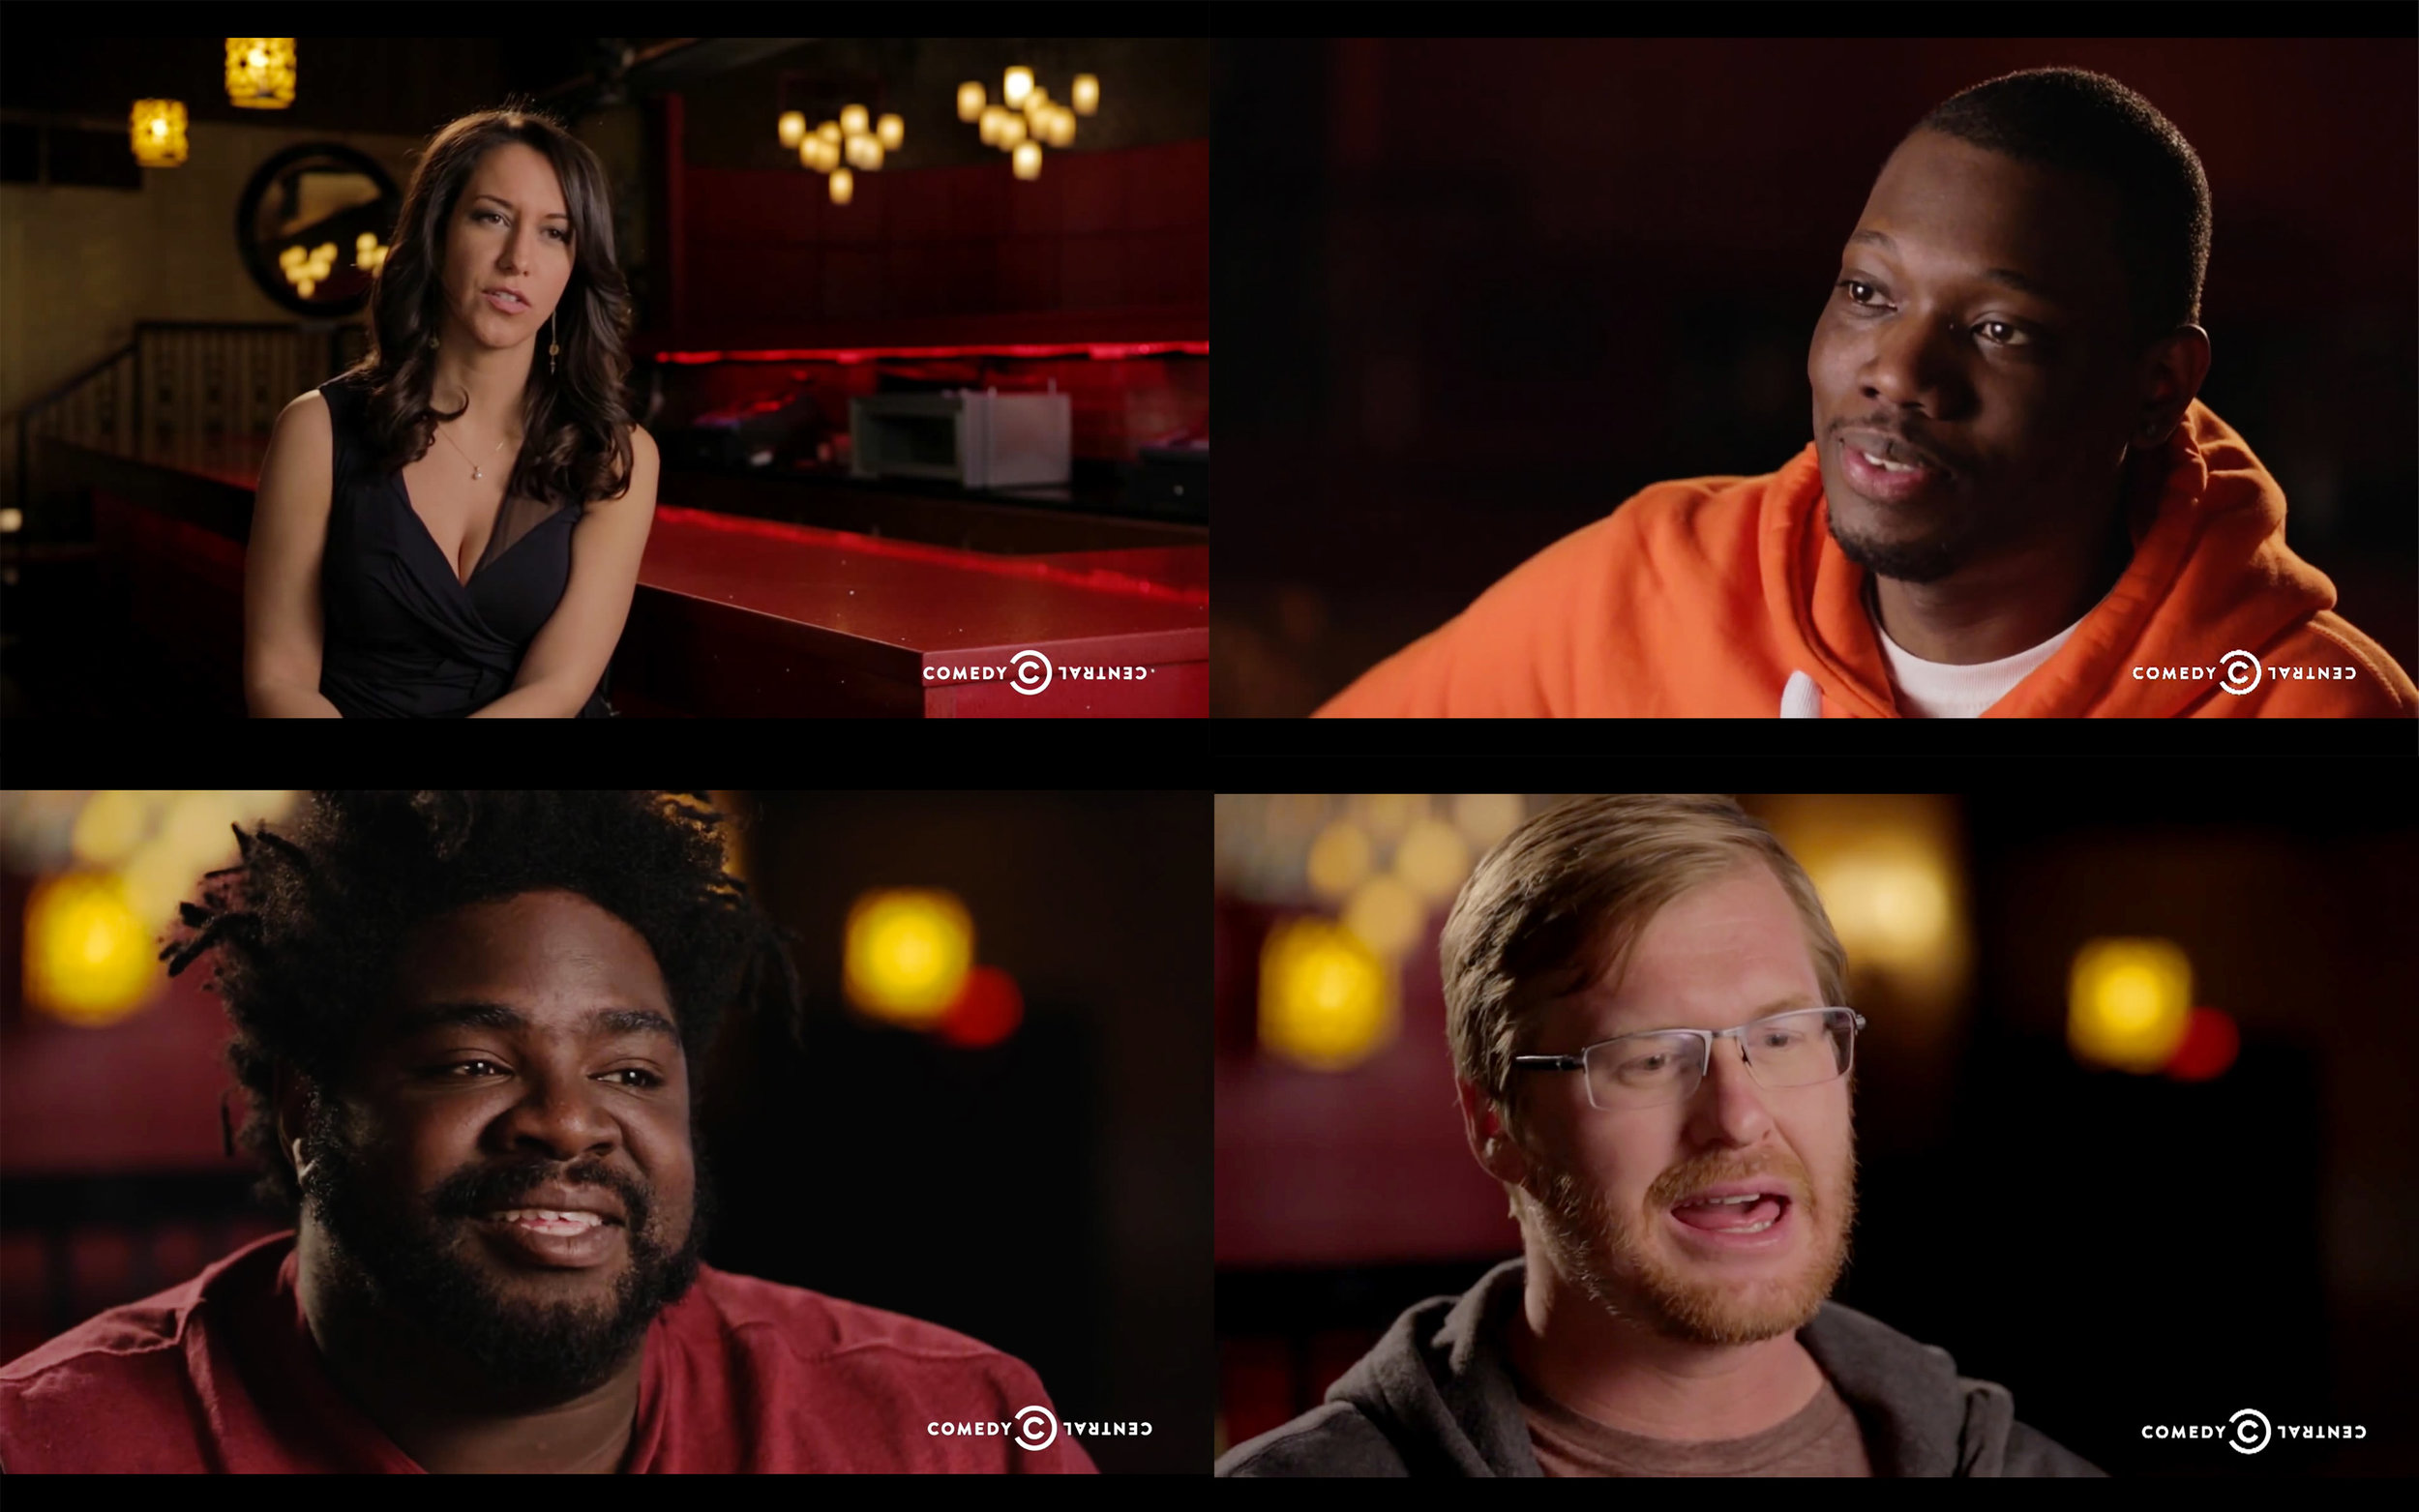 Comedy Central's Half Hour: Behind the Scenes  - Directed by Scott Moran.   View episodes here